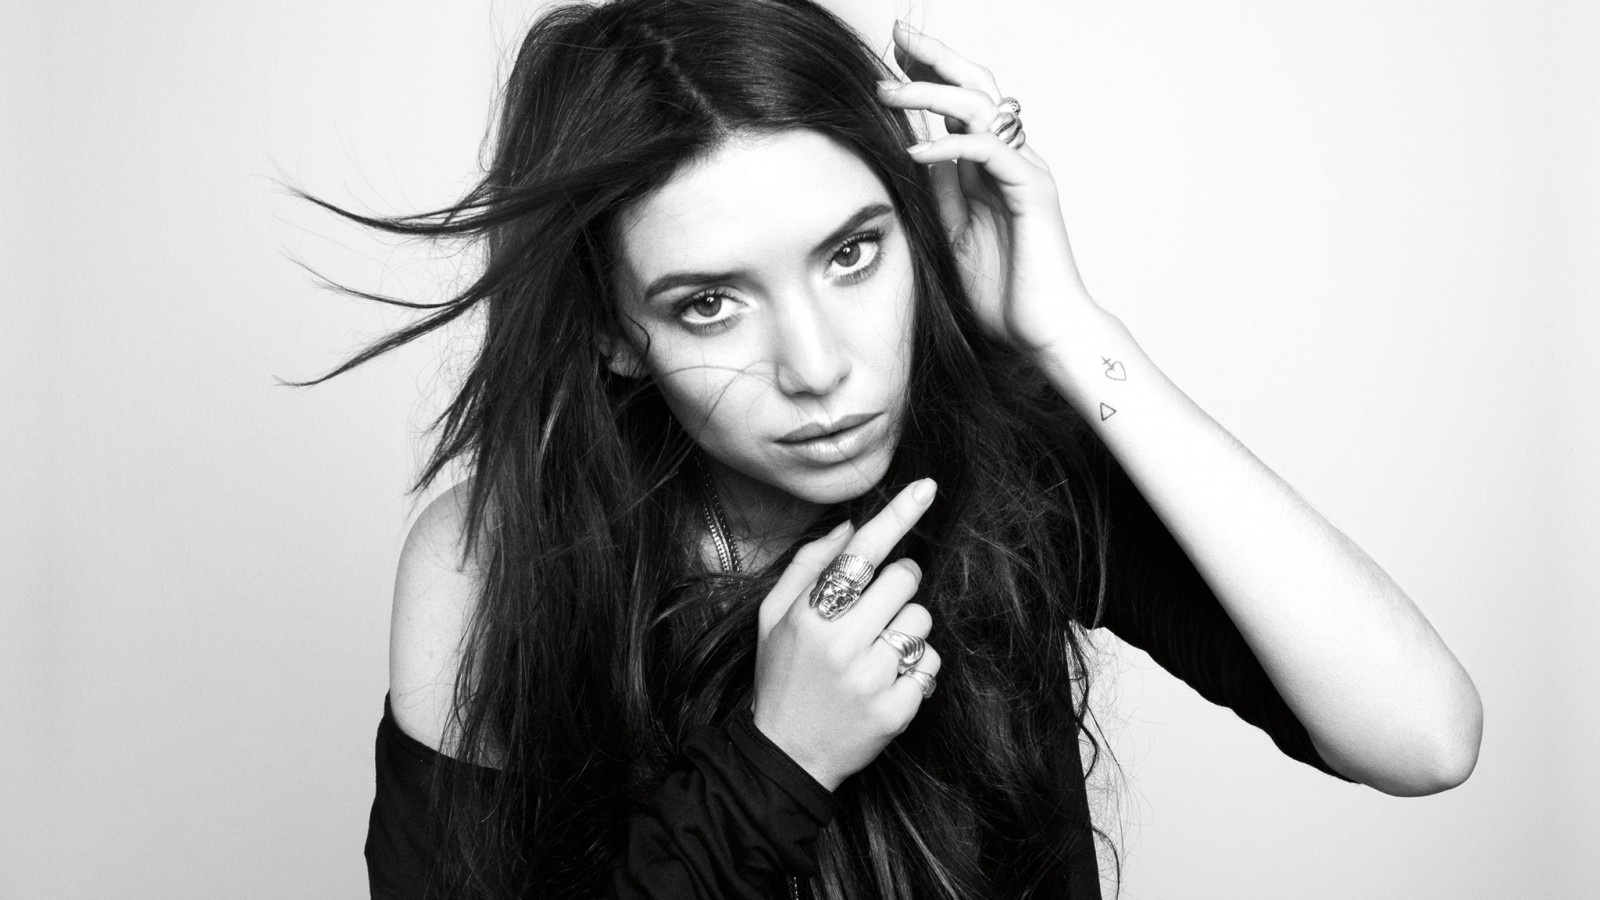 #1 by Cartoon Dandy: Lykke Li – I Never Learn